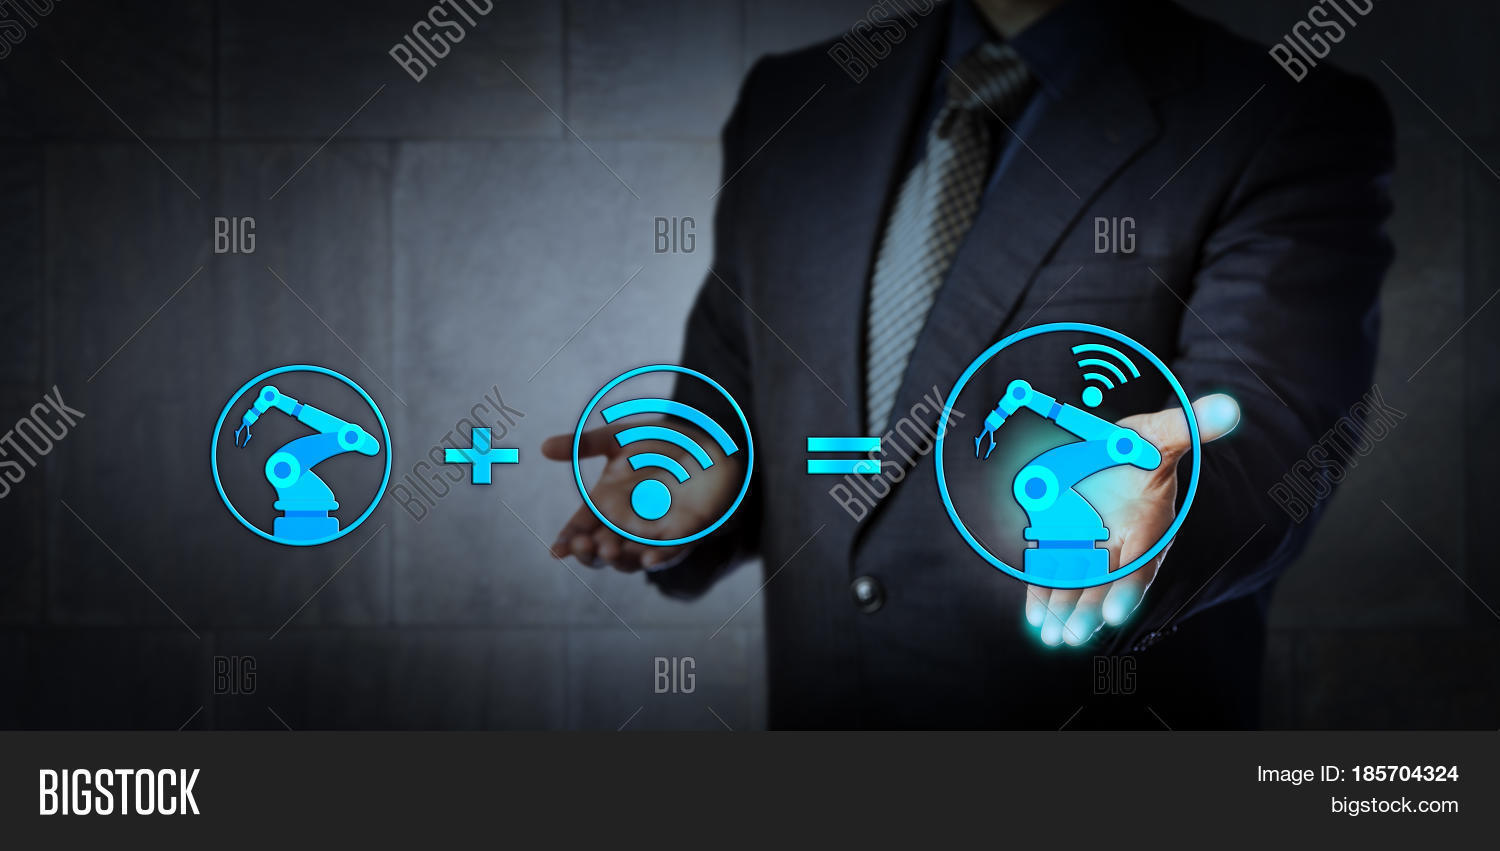 Blue chip consultant offering image photo bigstock blue chip consultant offering technology solution a six axis industrial robot icon plus a wireless malvernweather Choice Image